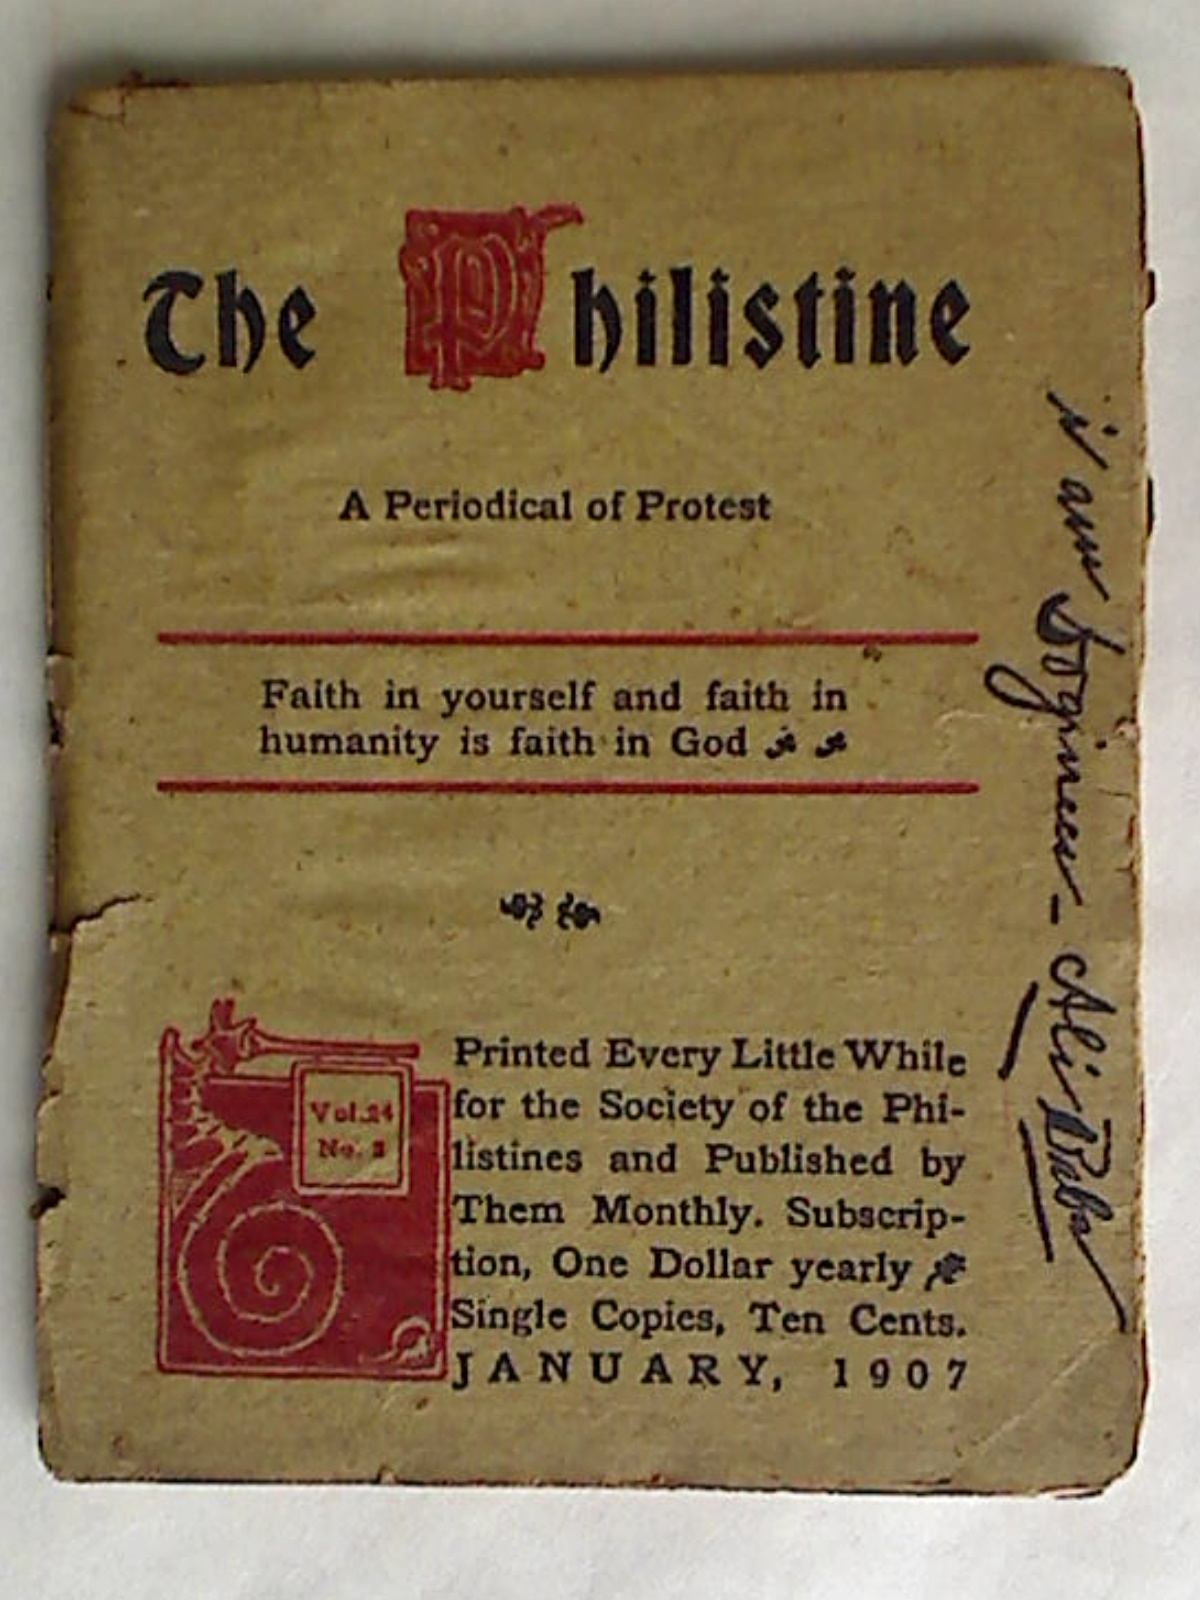 The Philistine: A Periodical of Protest. Volume 24, Number 2, January 1907.